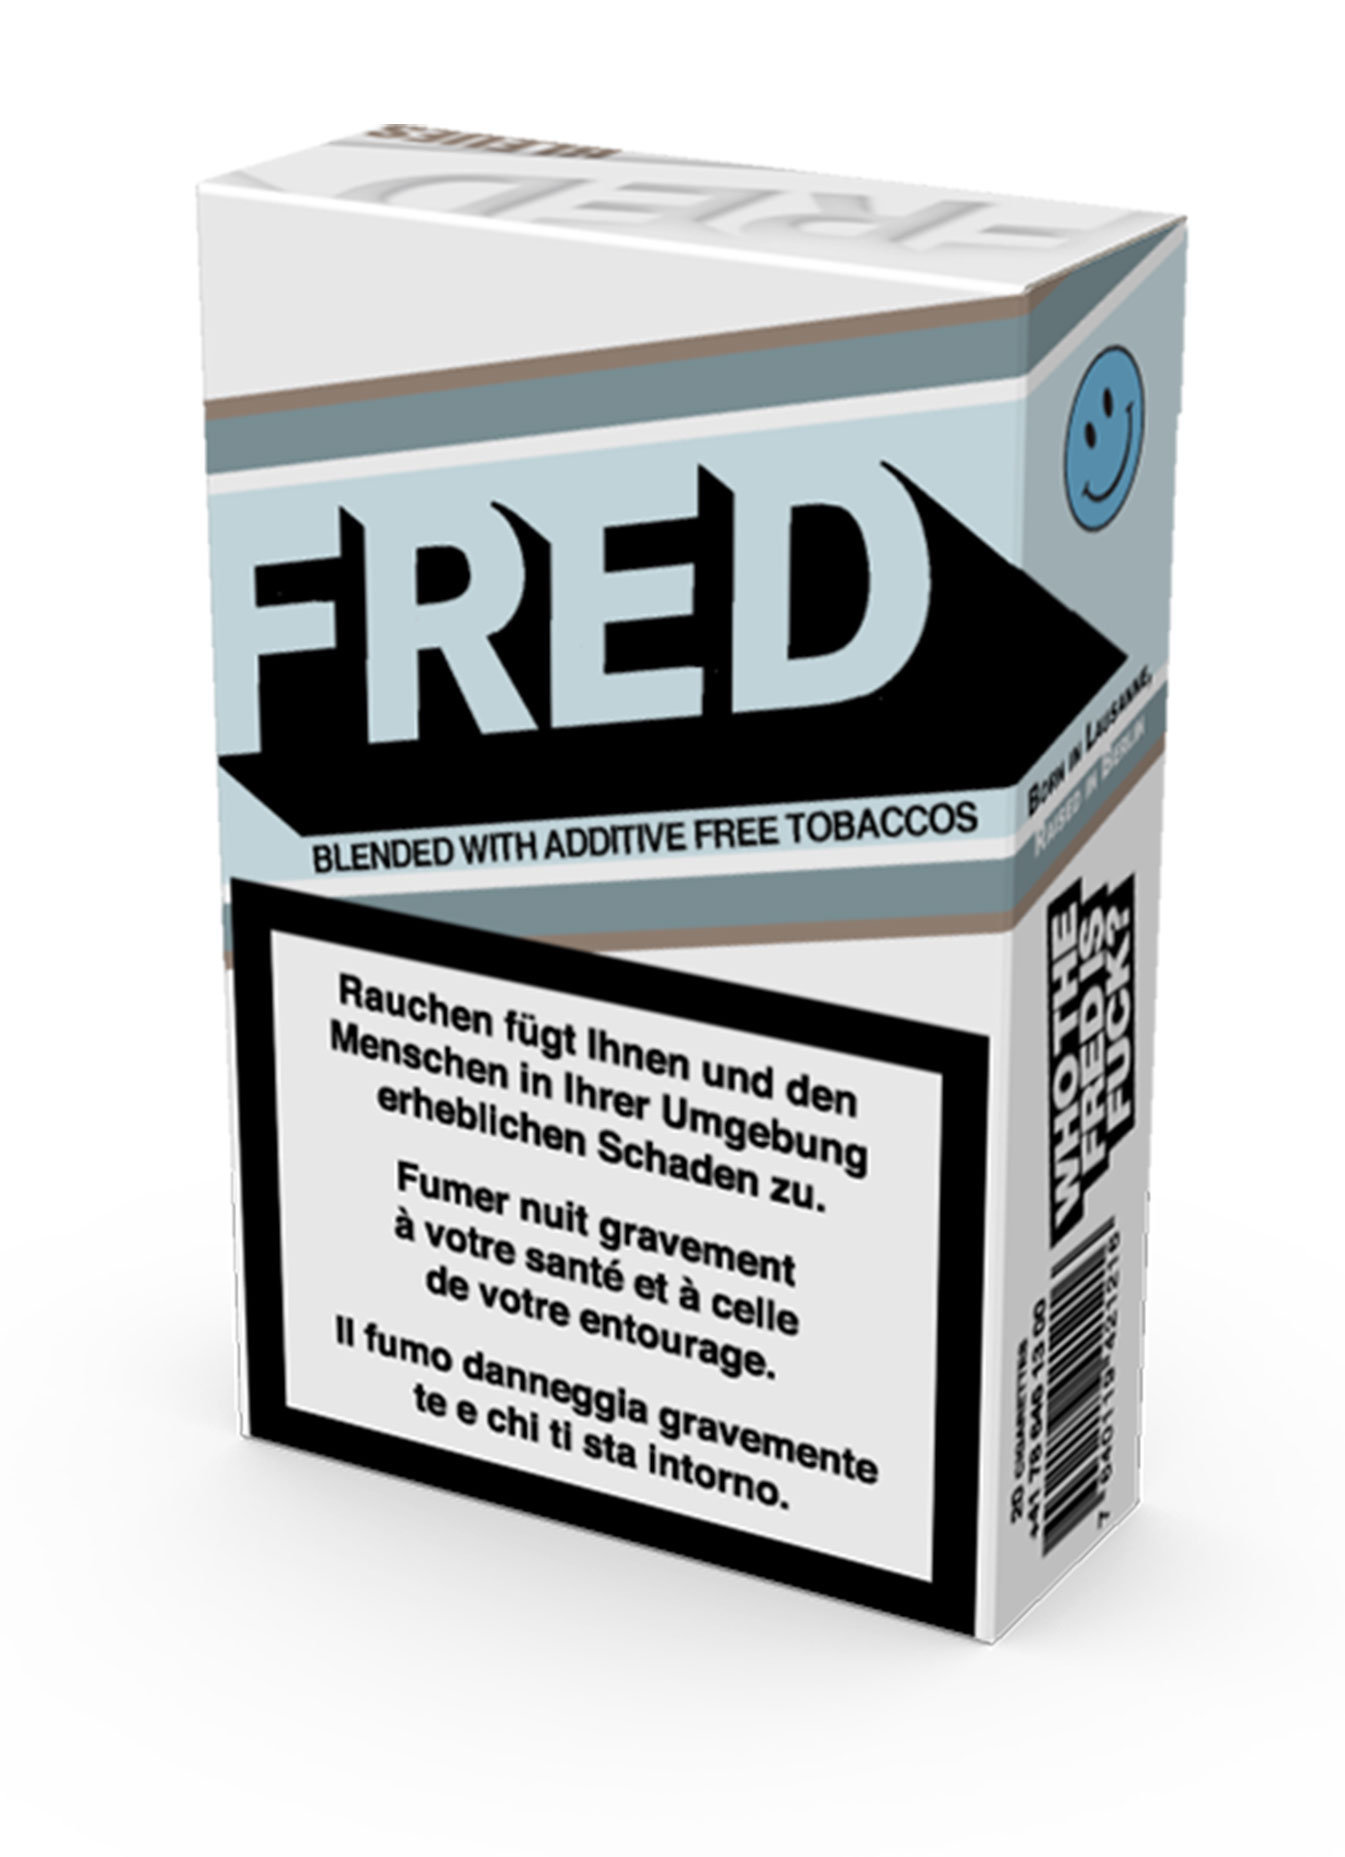 Fred Bleues